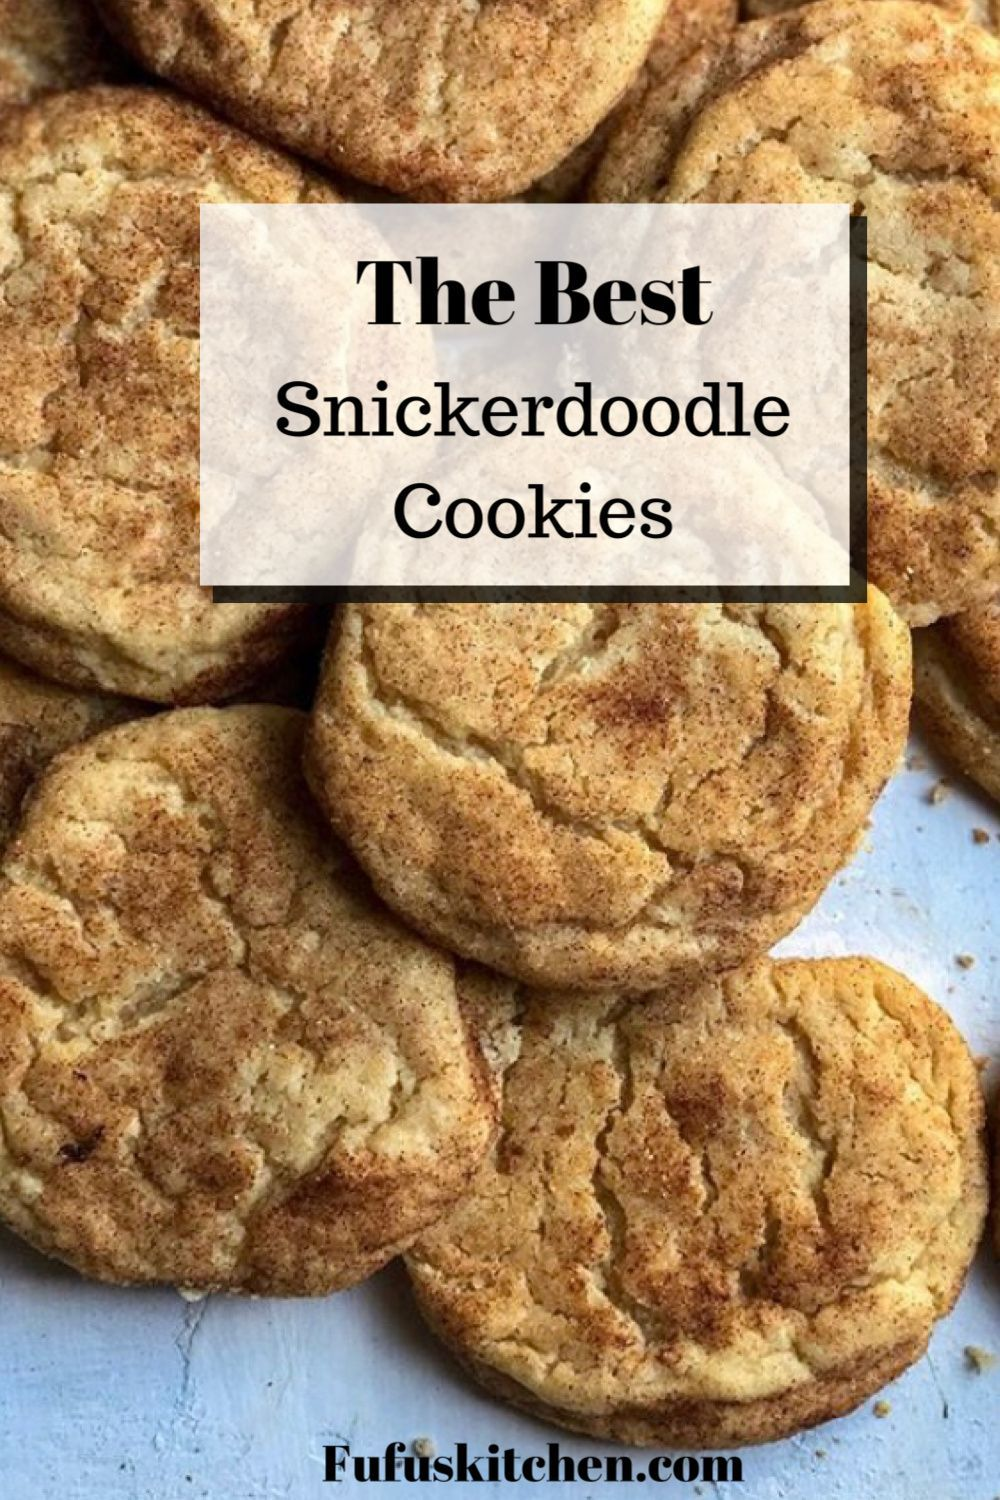 These cinnamon sugar cookies are spectacular! I always make it this time of year and they are so so good. These snickerdoodles are chewy and easy to make! #snickerdoodle #snickerdoodlecookies #easycookierecipes #cookies #cinnamonsugar